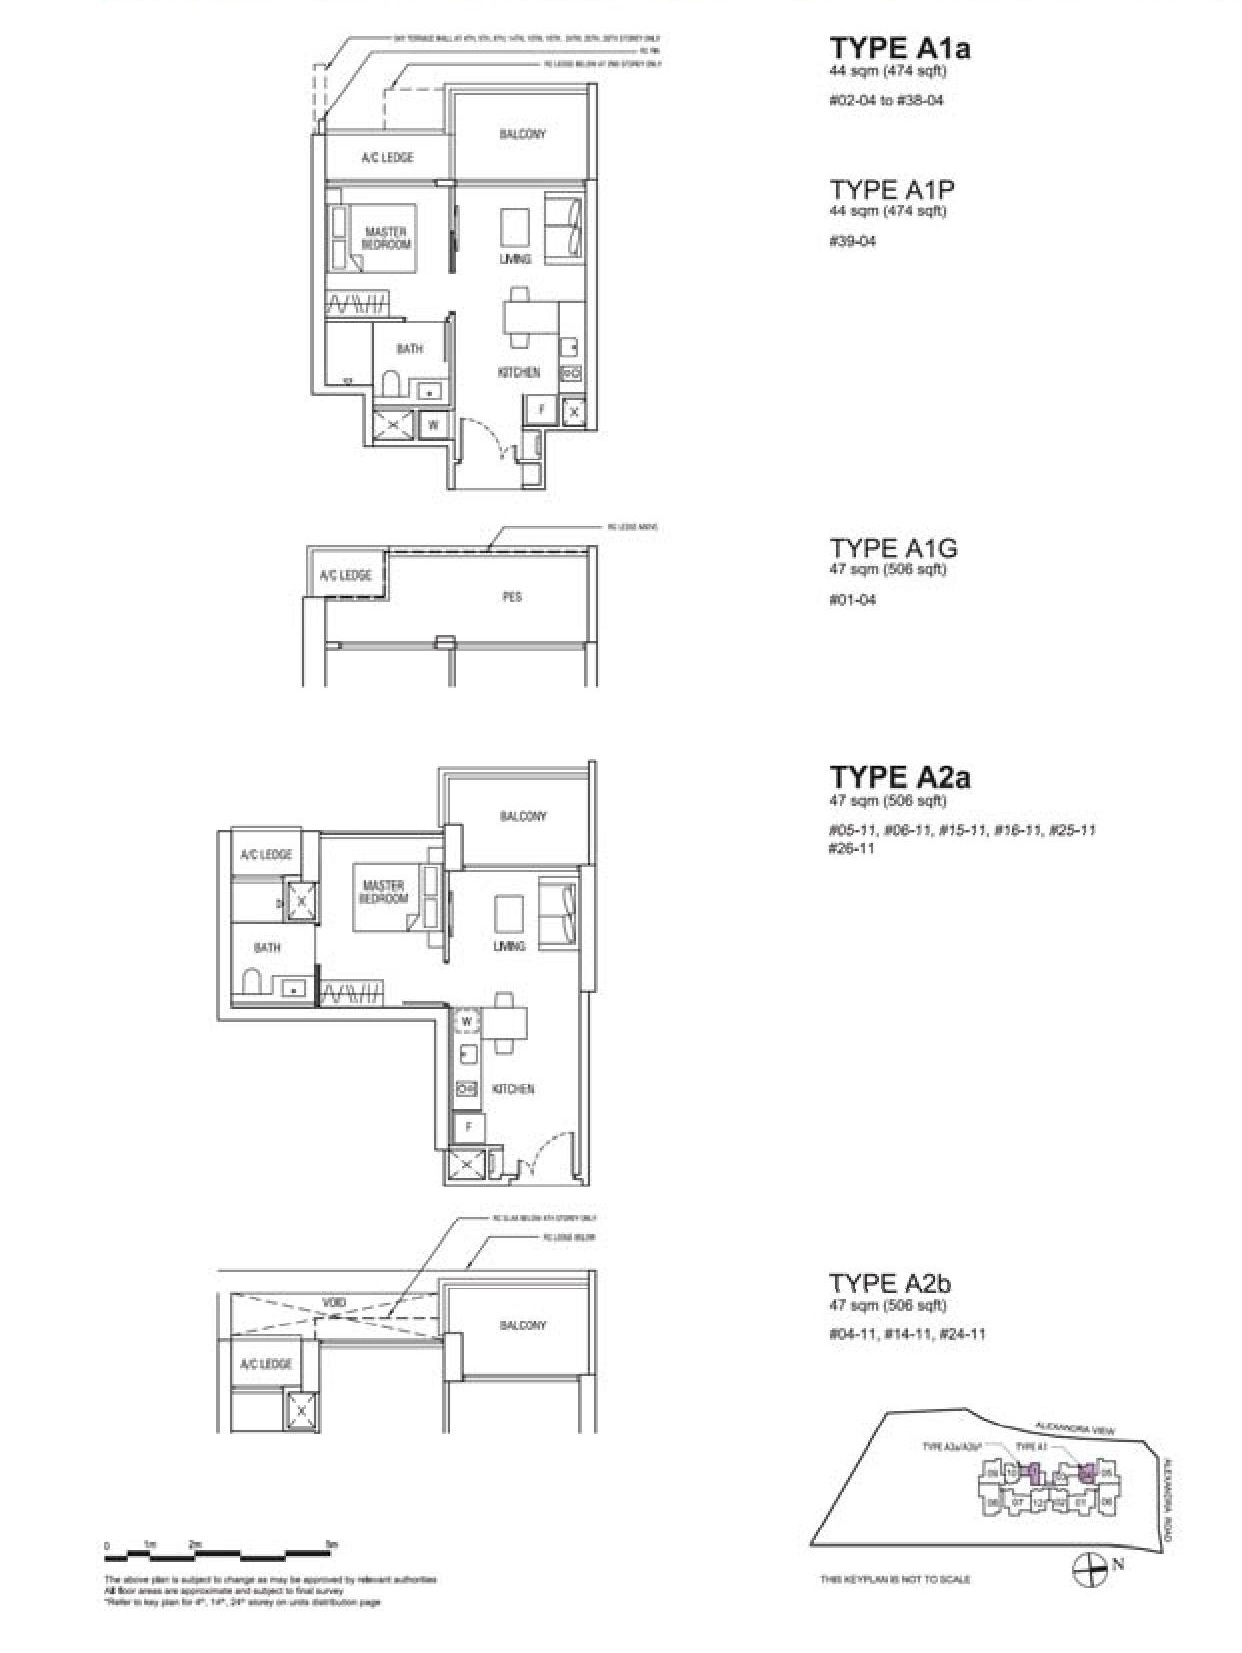 Alex Residences 1 Bedroom Type A1, A1P, A1G, A2a, A2b Floor Plans